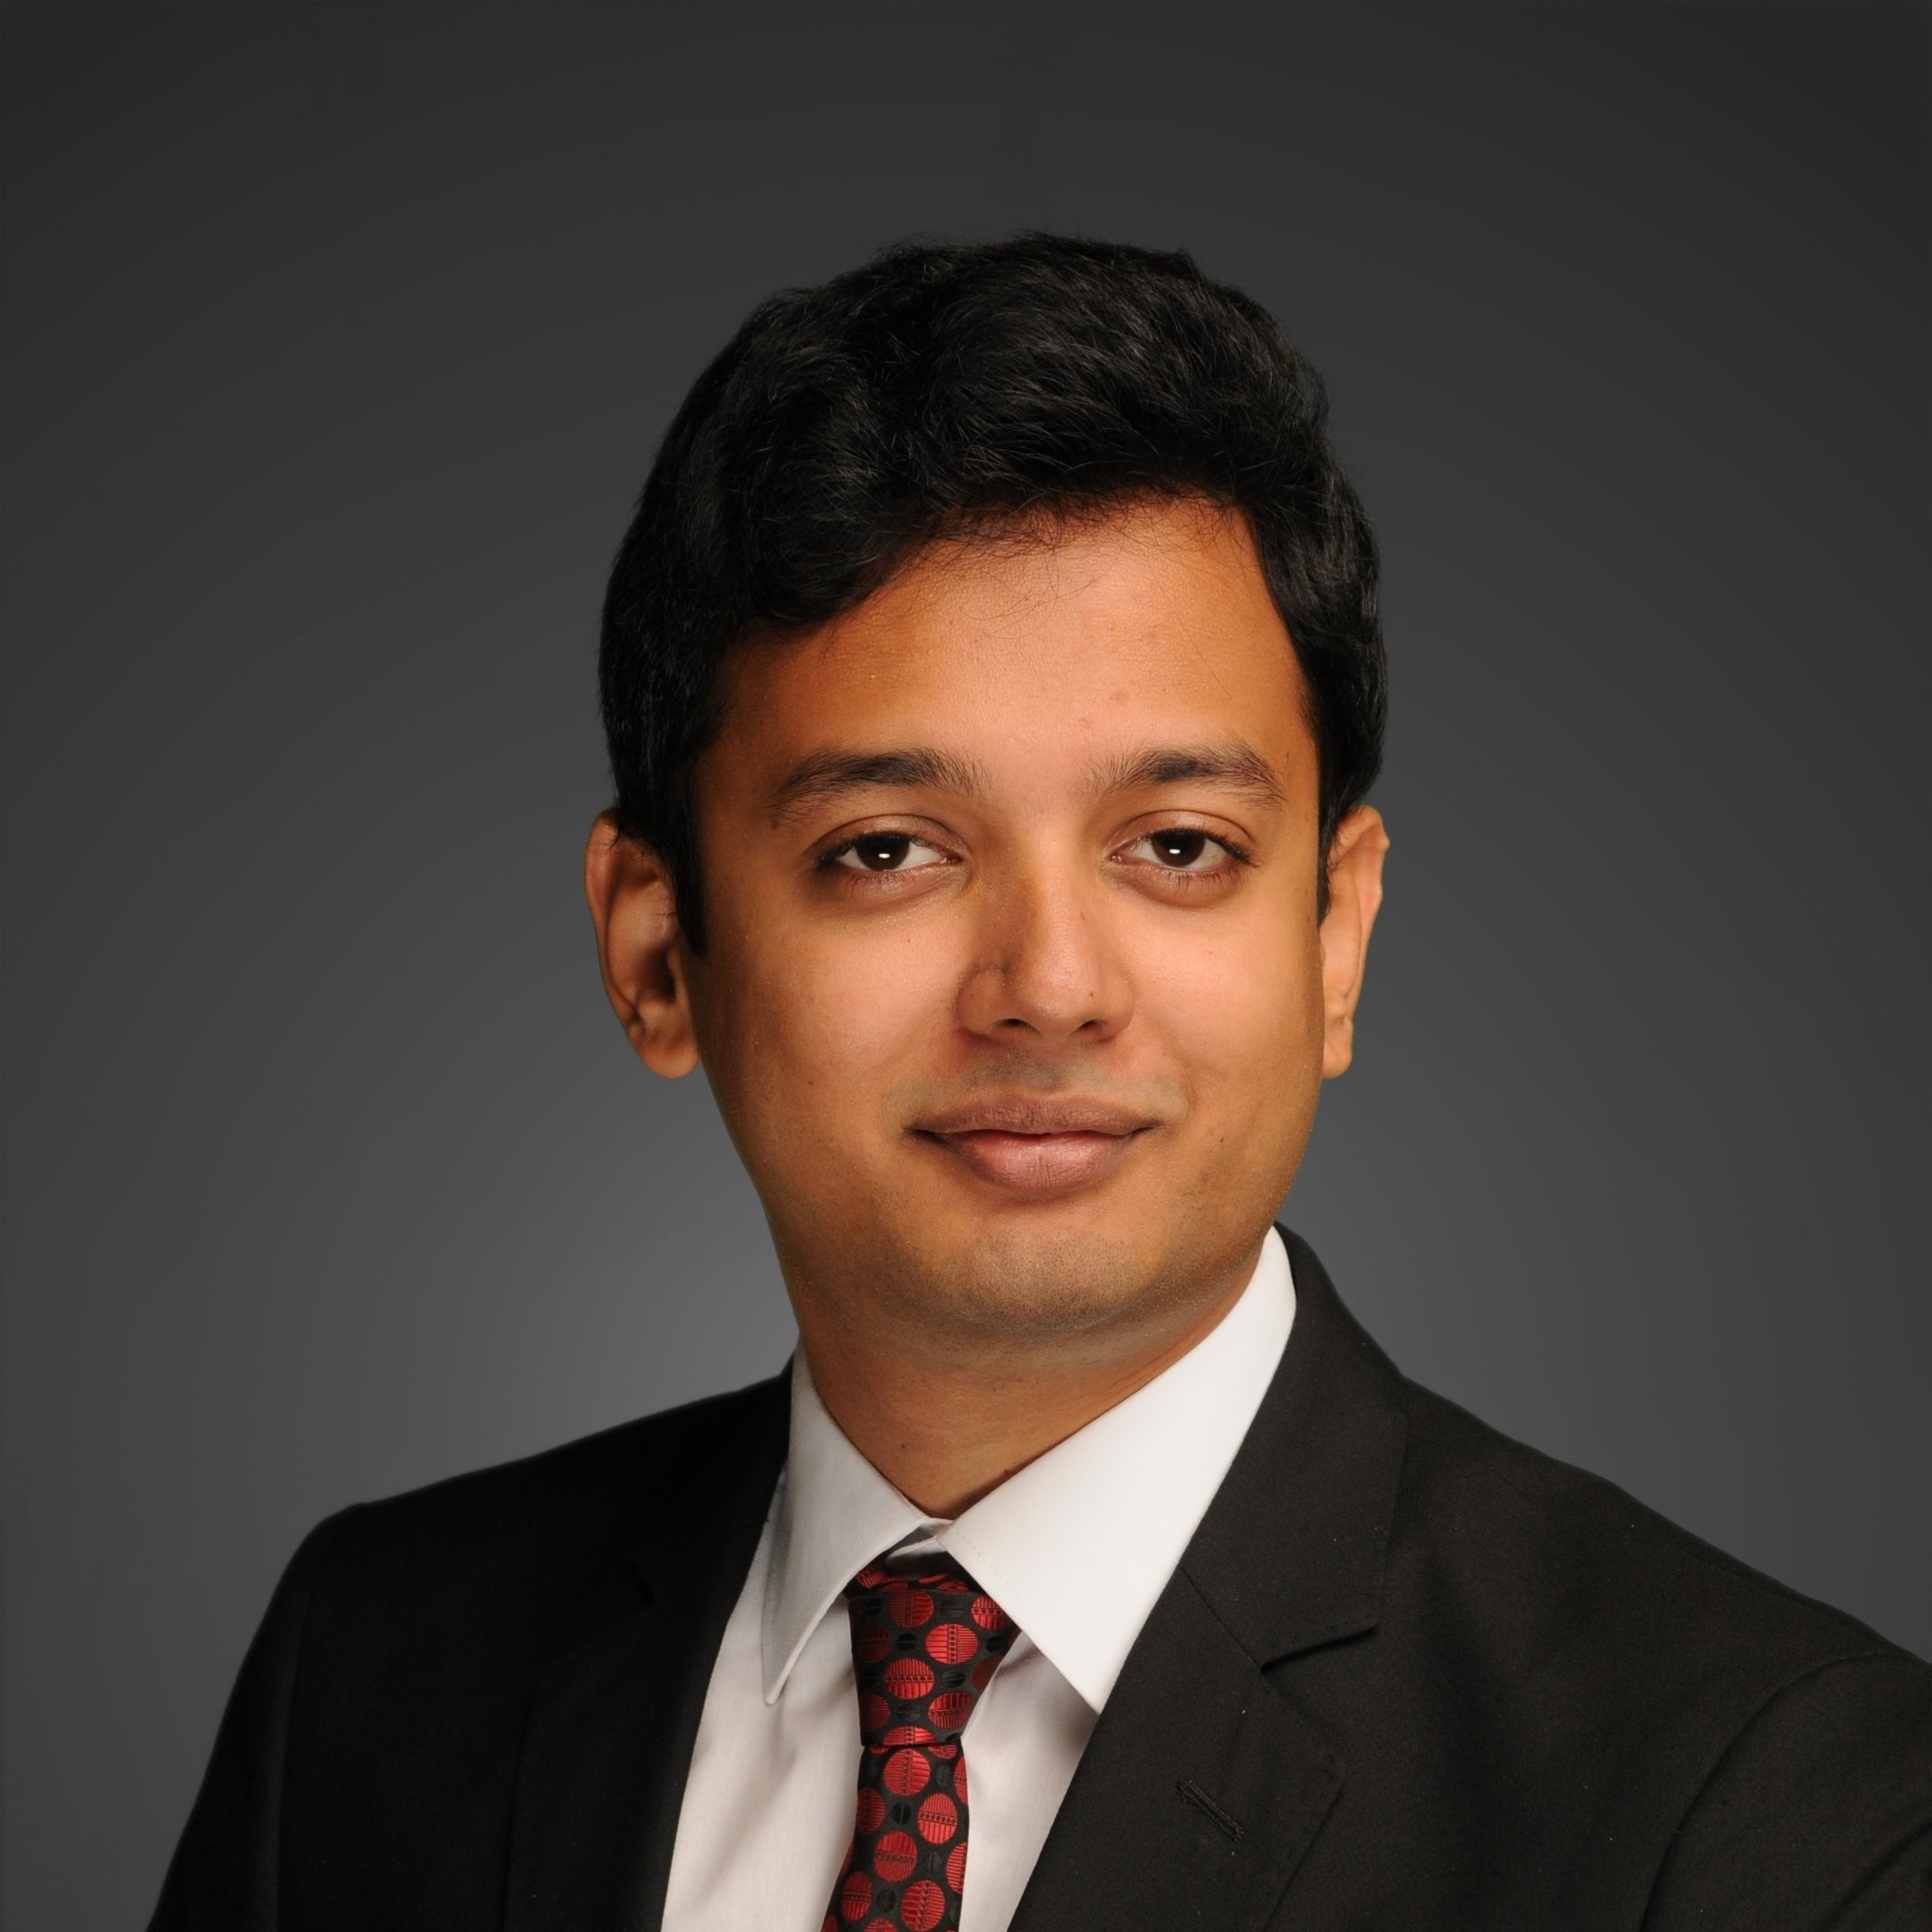 Utkarsh Satyawadi - Utkarsh grew up in New Delhi, India and graduated from Delhi College of Engineering in 2014 with a major in Electrical Engineering. Before coming to Stern, he worked at Deloitte Consulting as a Business Analyst. Utkarsh loves cars and long drives and completed a 15 day 5000 mile drive across India last winter.